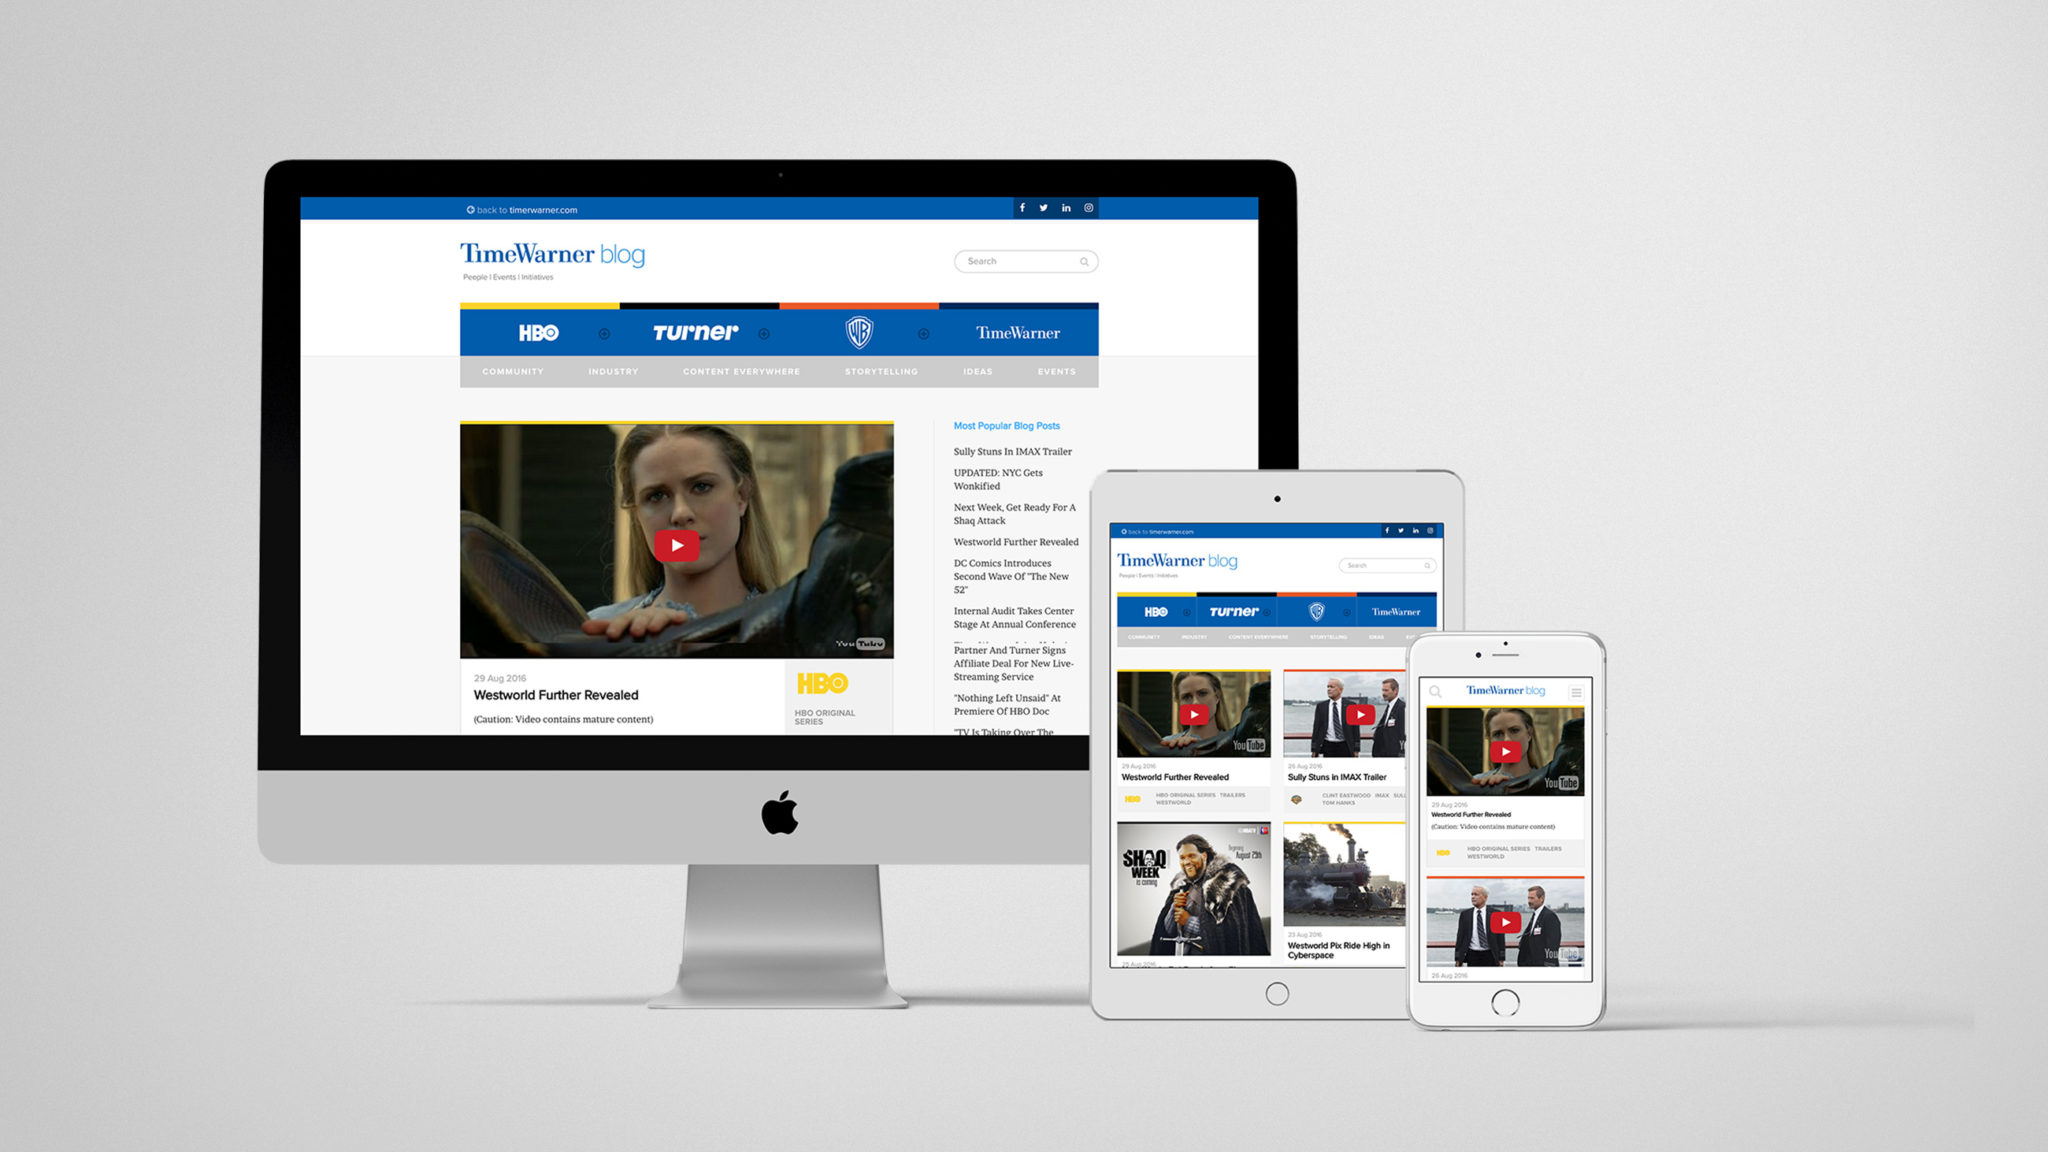 Time Warner Inc. Blog | Responsive Design | Jake Cooper Design